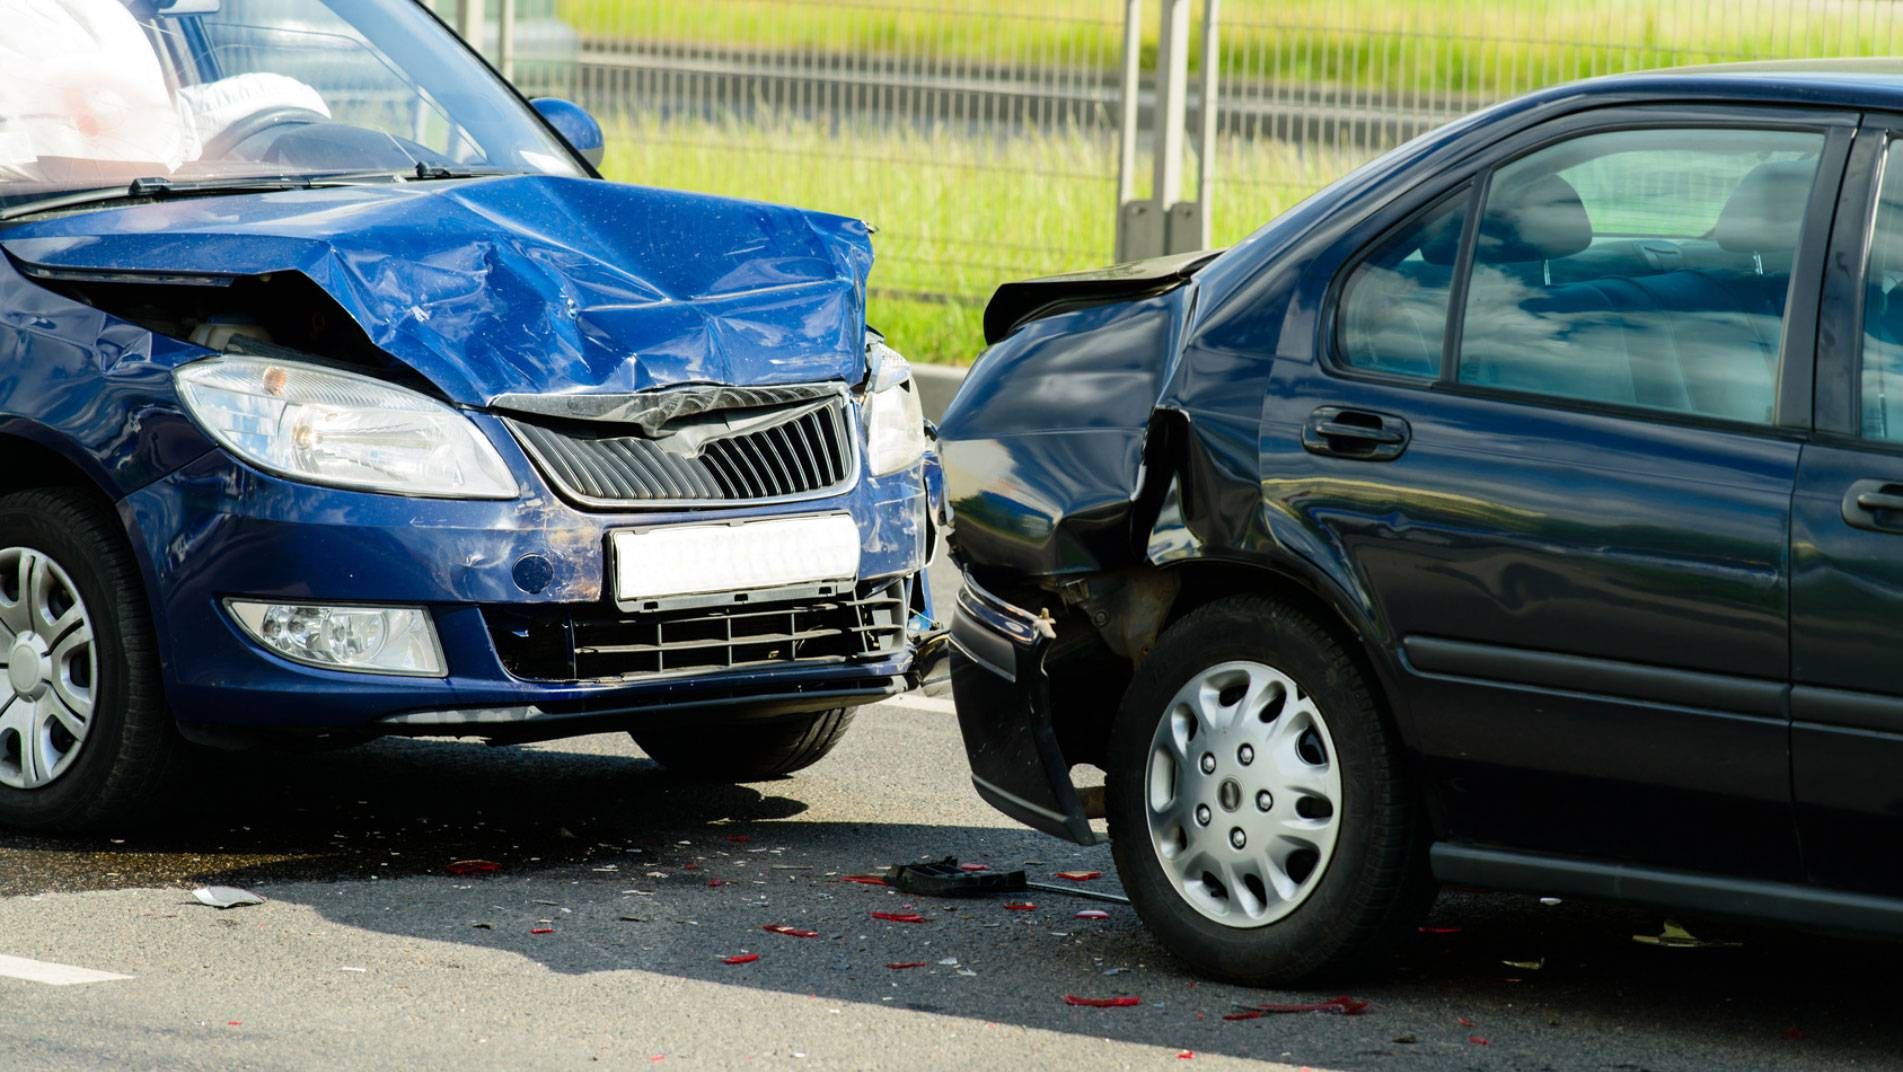 West Virginia Speeding Accident Attorneys